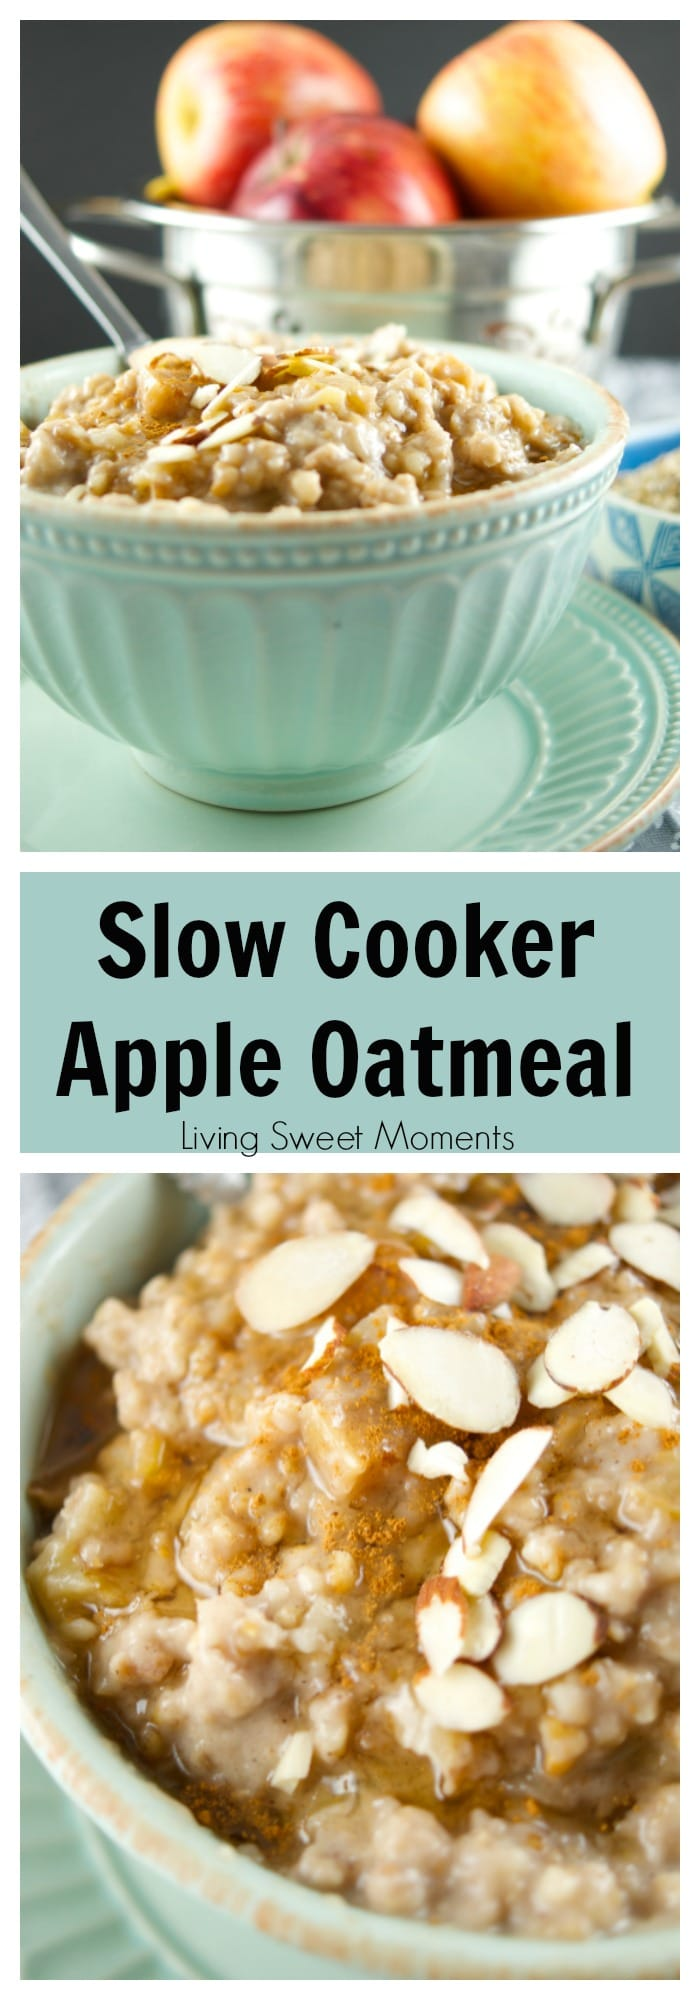 This delicious Slow Cooker Apple Oatmeal cooks overnight. It's vegan, healthy and full of flavor. Wake up to a hot bowl of apple pie oatmeal full of spice